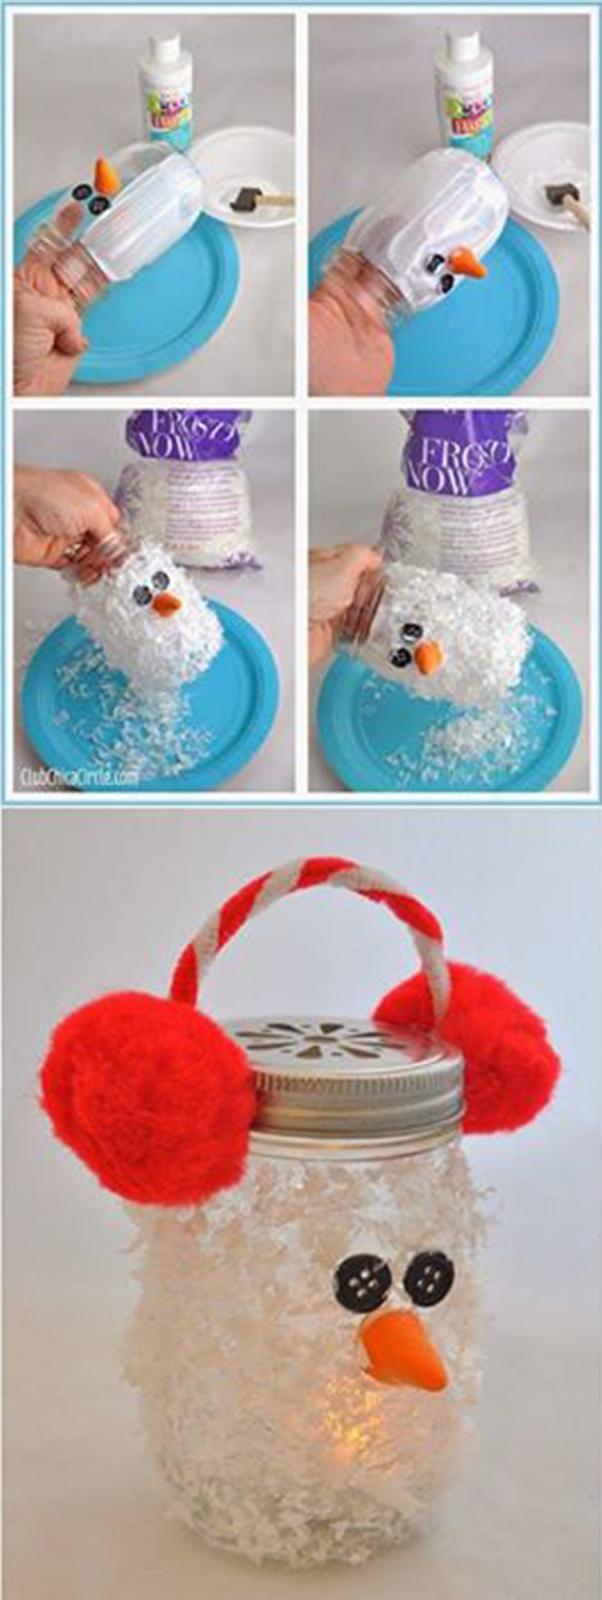 DIY TUTORIALS FOR CHRASTMAS